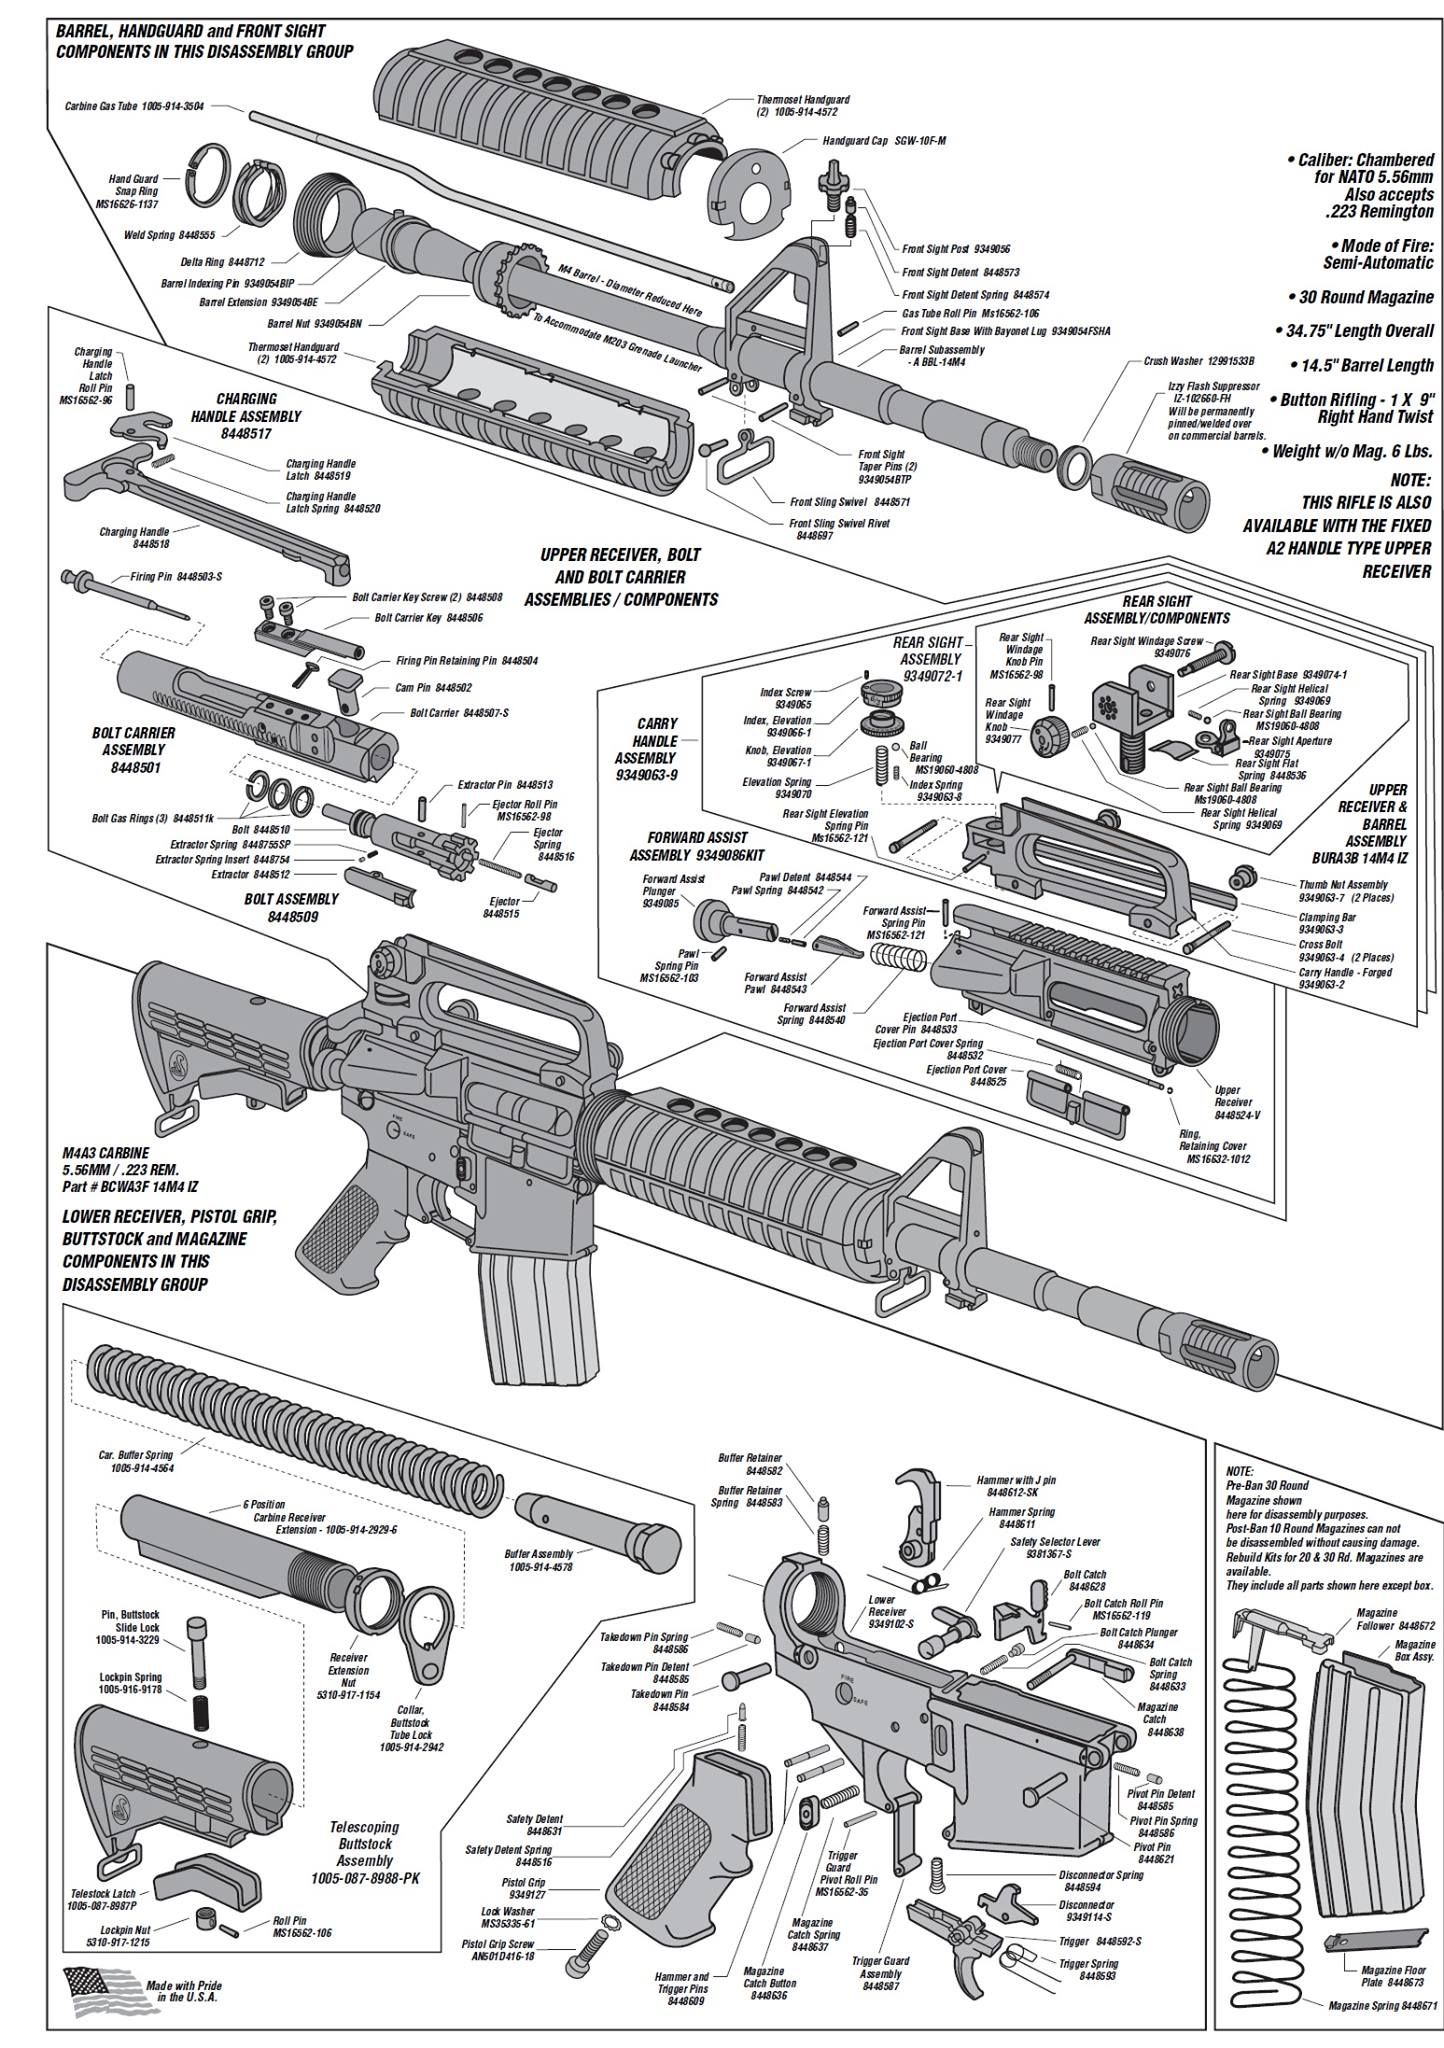 Parts Breakdown Ar 15